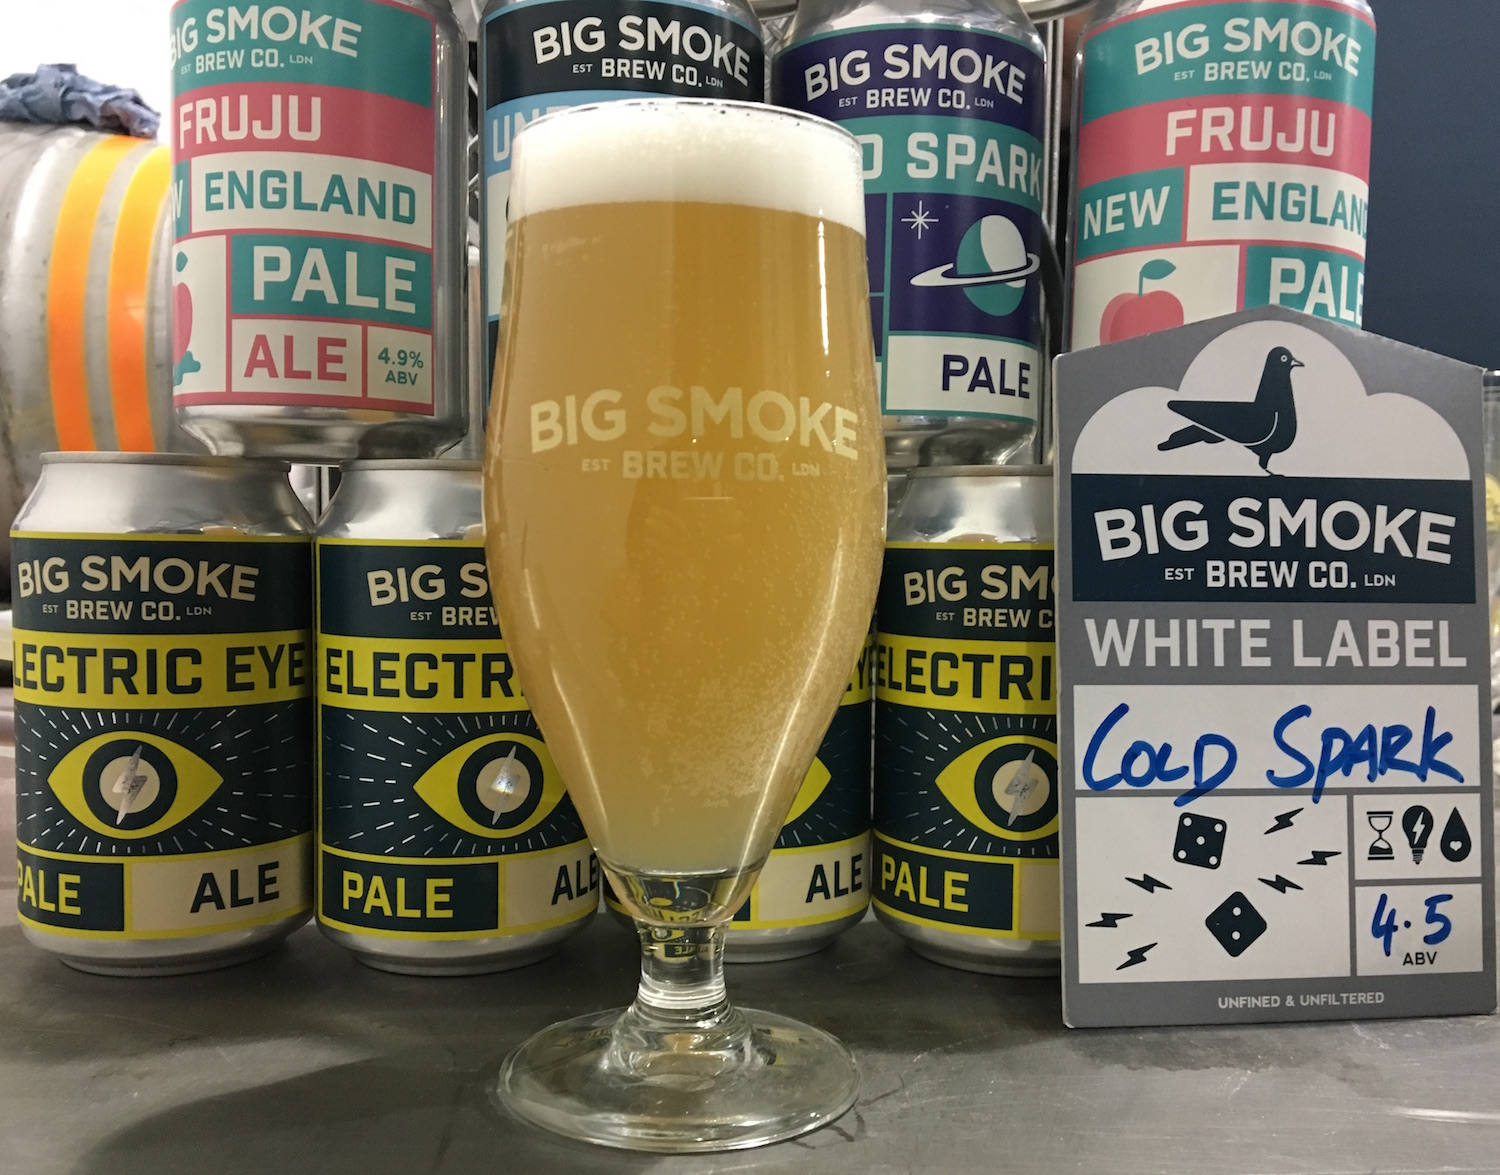 Big Smoke Brew Co Celebrate Launch of New Brewery